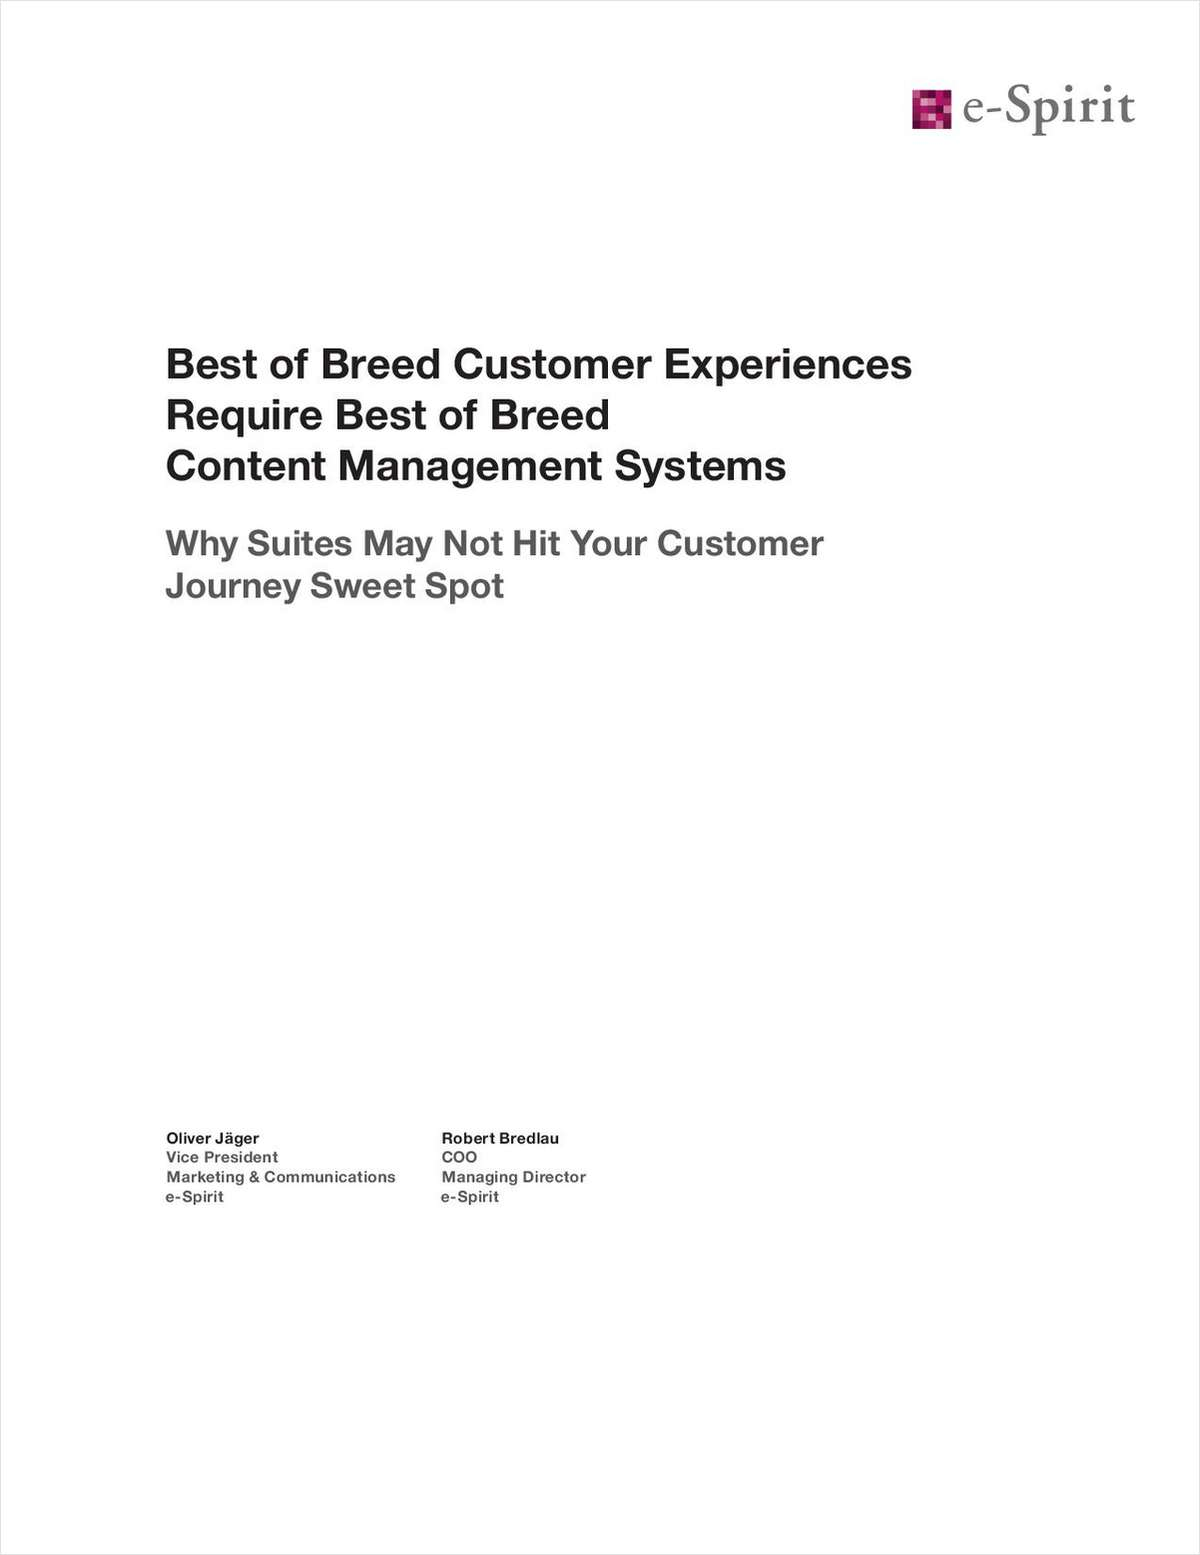 Treat Your Customers Better with Best of Breed Content Management Systems